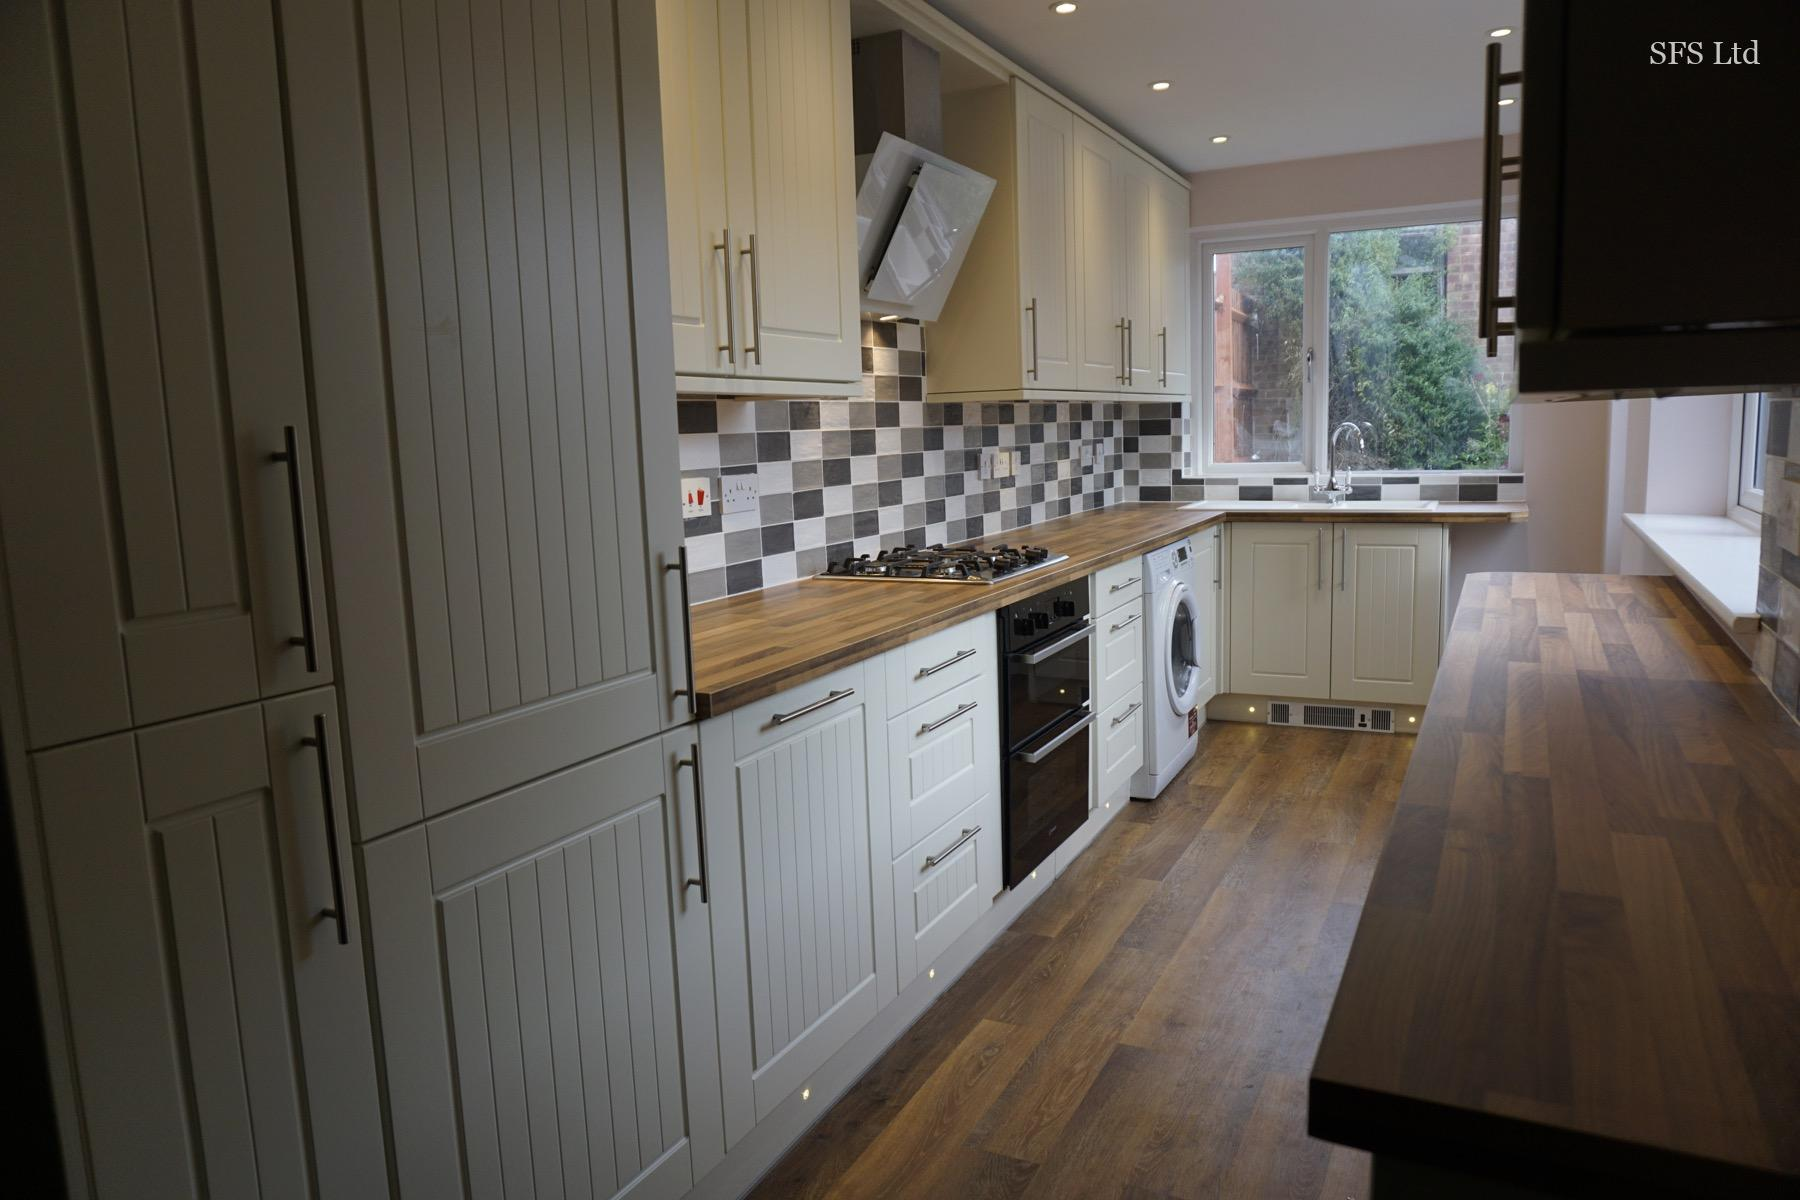 Bathroom and Kitchen renovation in Bletchley-14